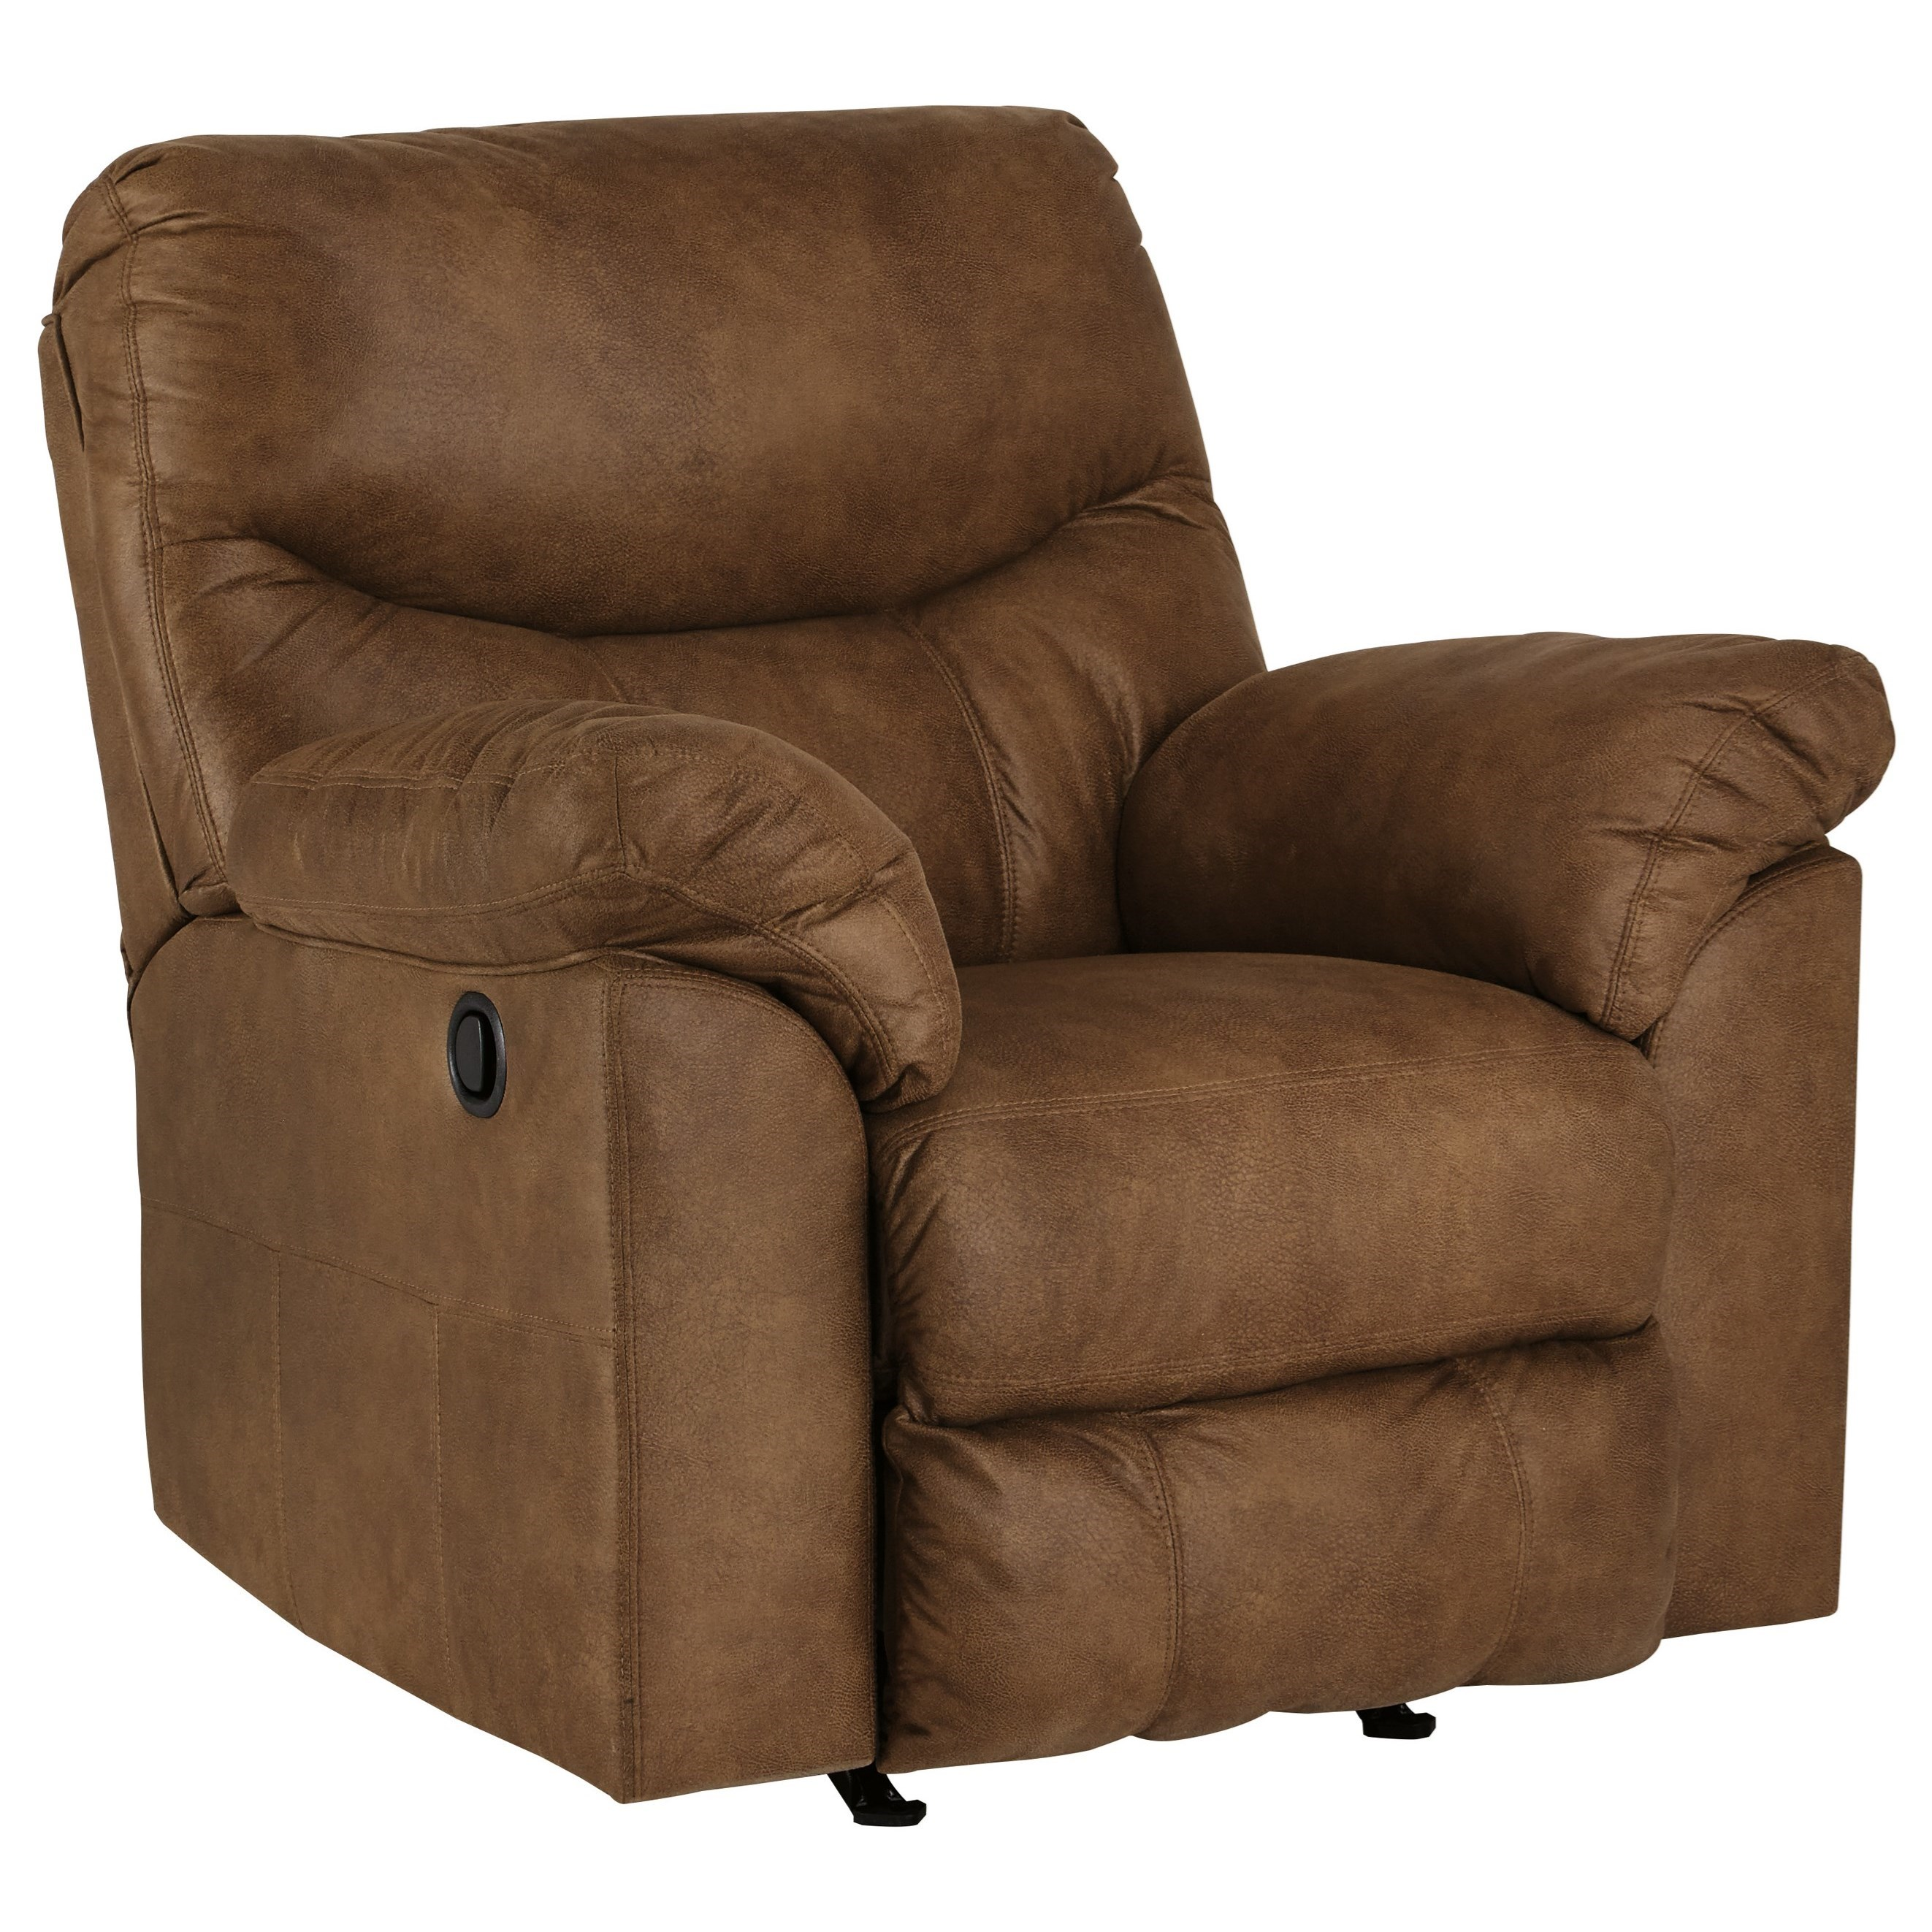 Boxberg Rocker Recliner by Signature Design by Ashley at Standard Furniture